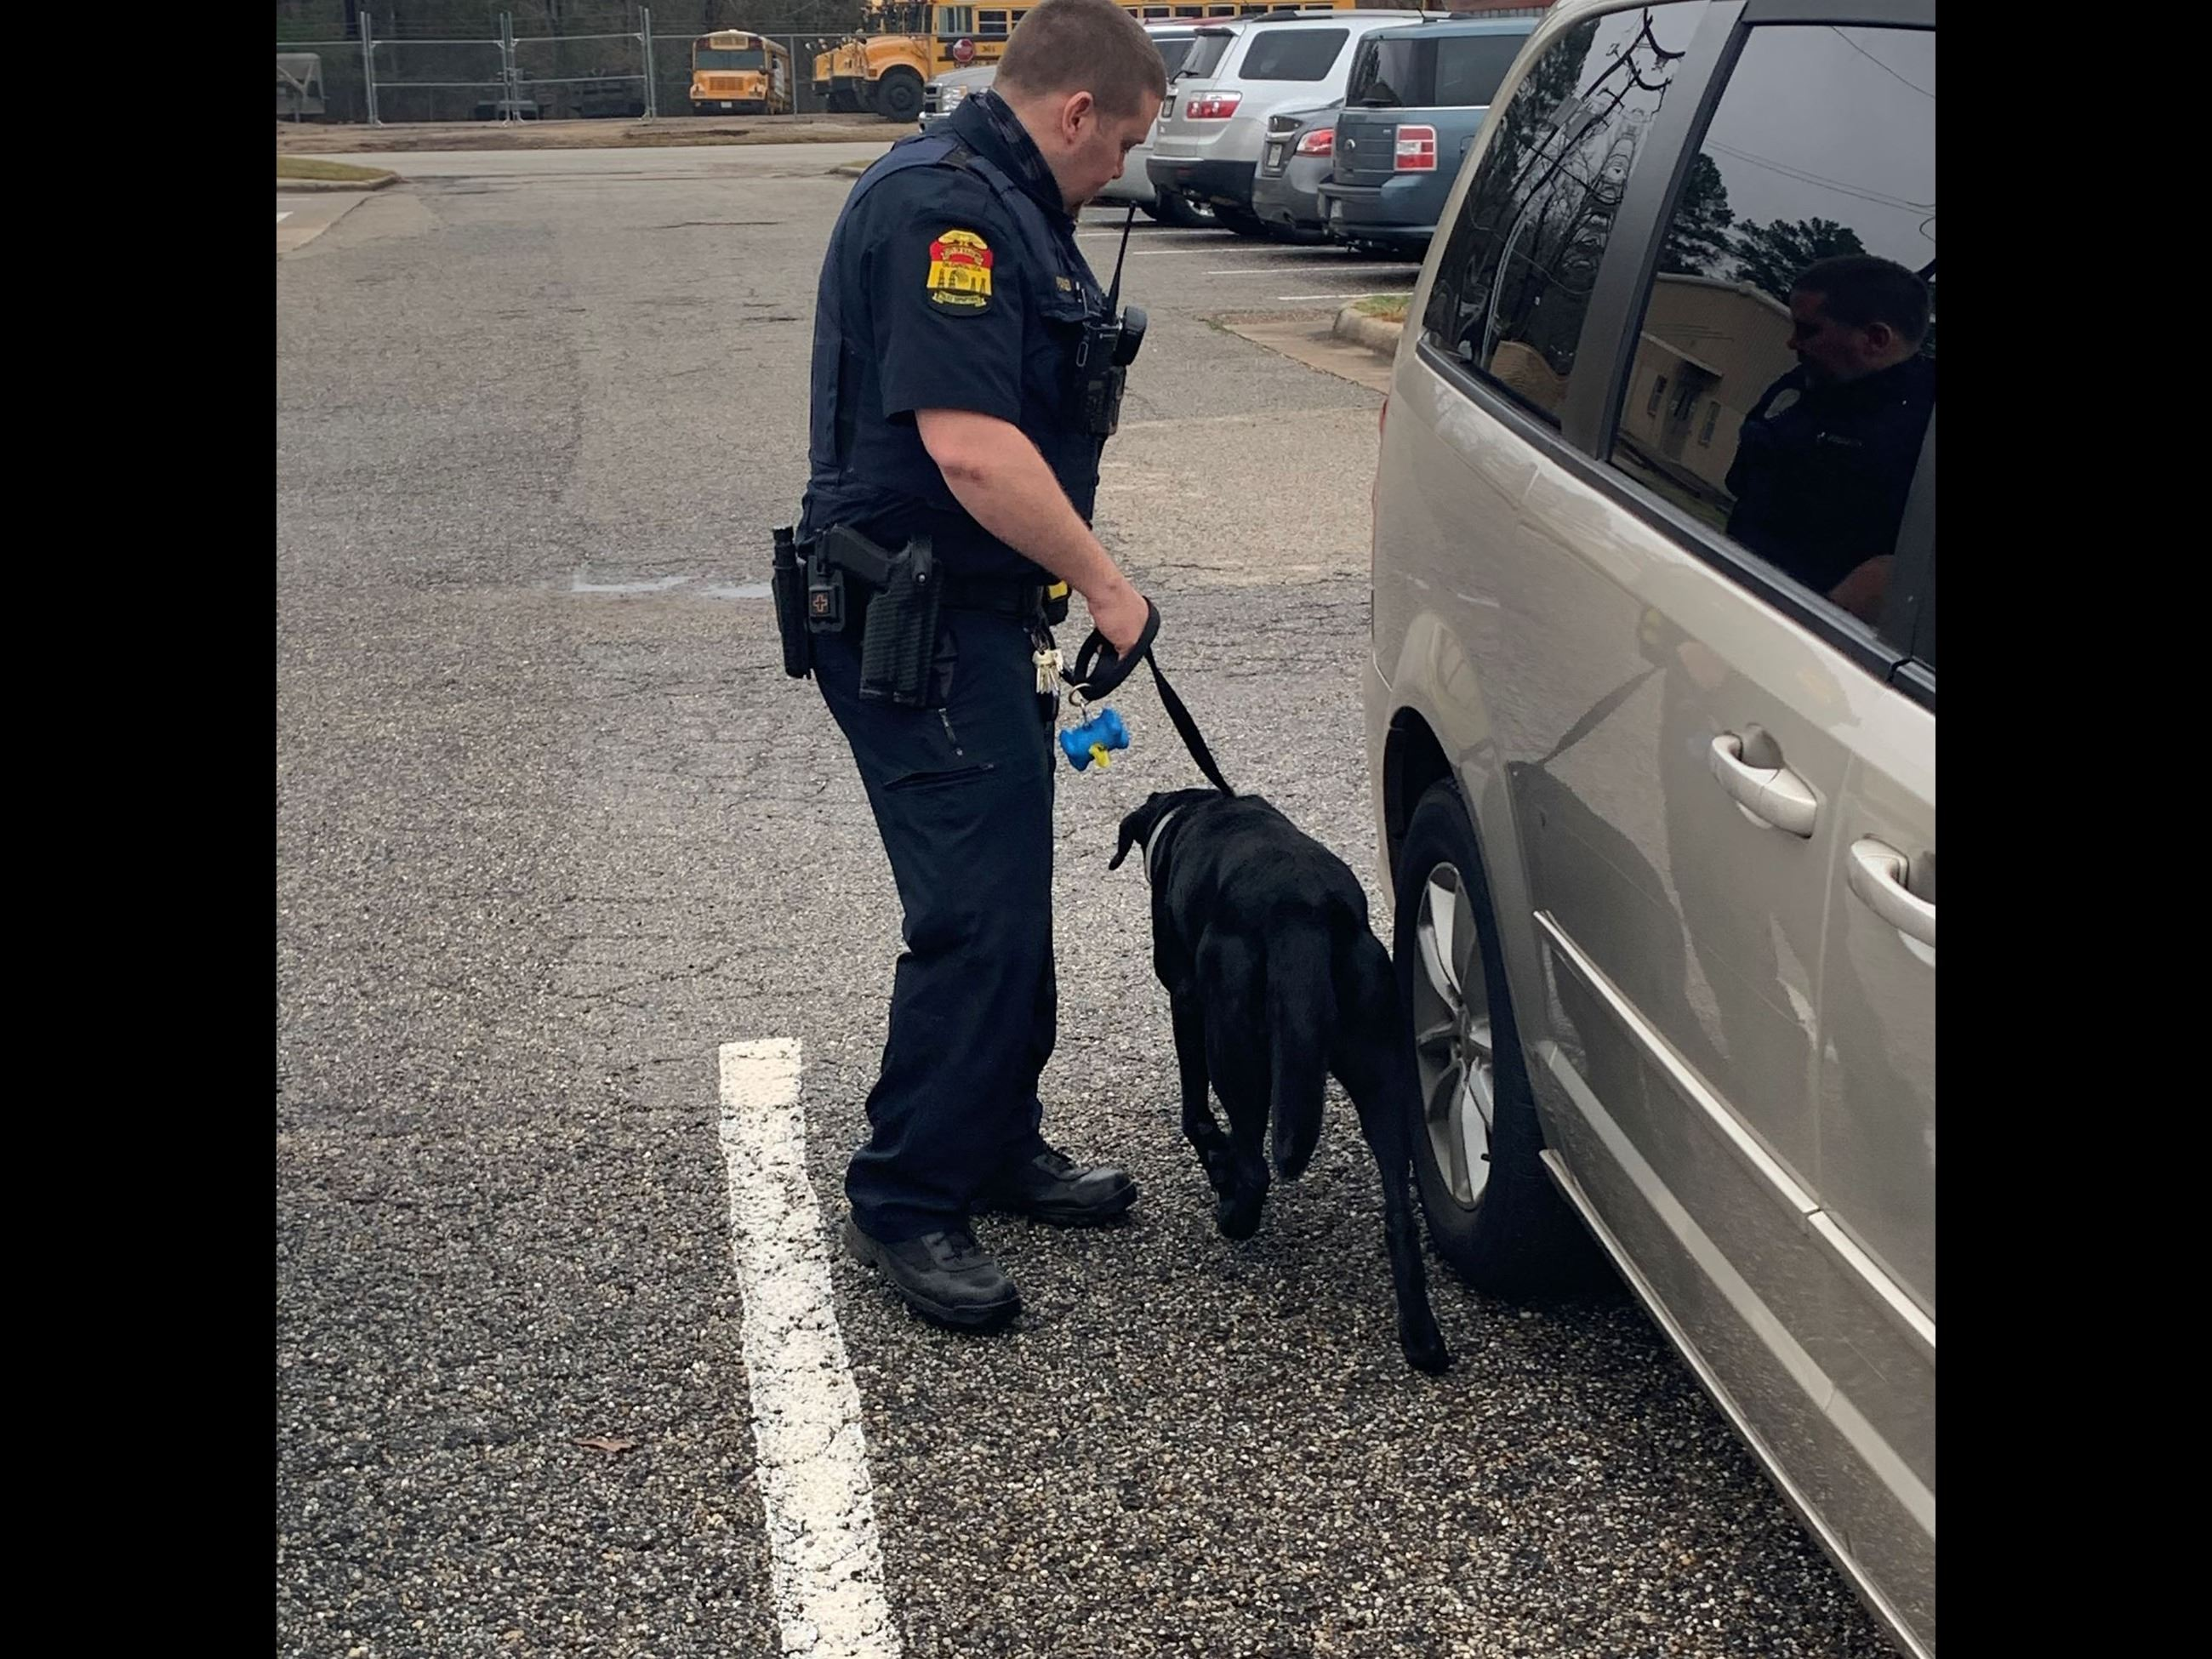 KPD Officer Forbes and K9 Ruger vehicle sniff